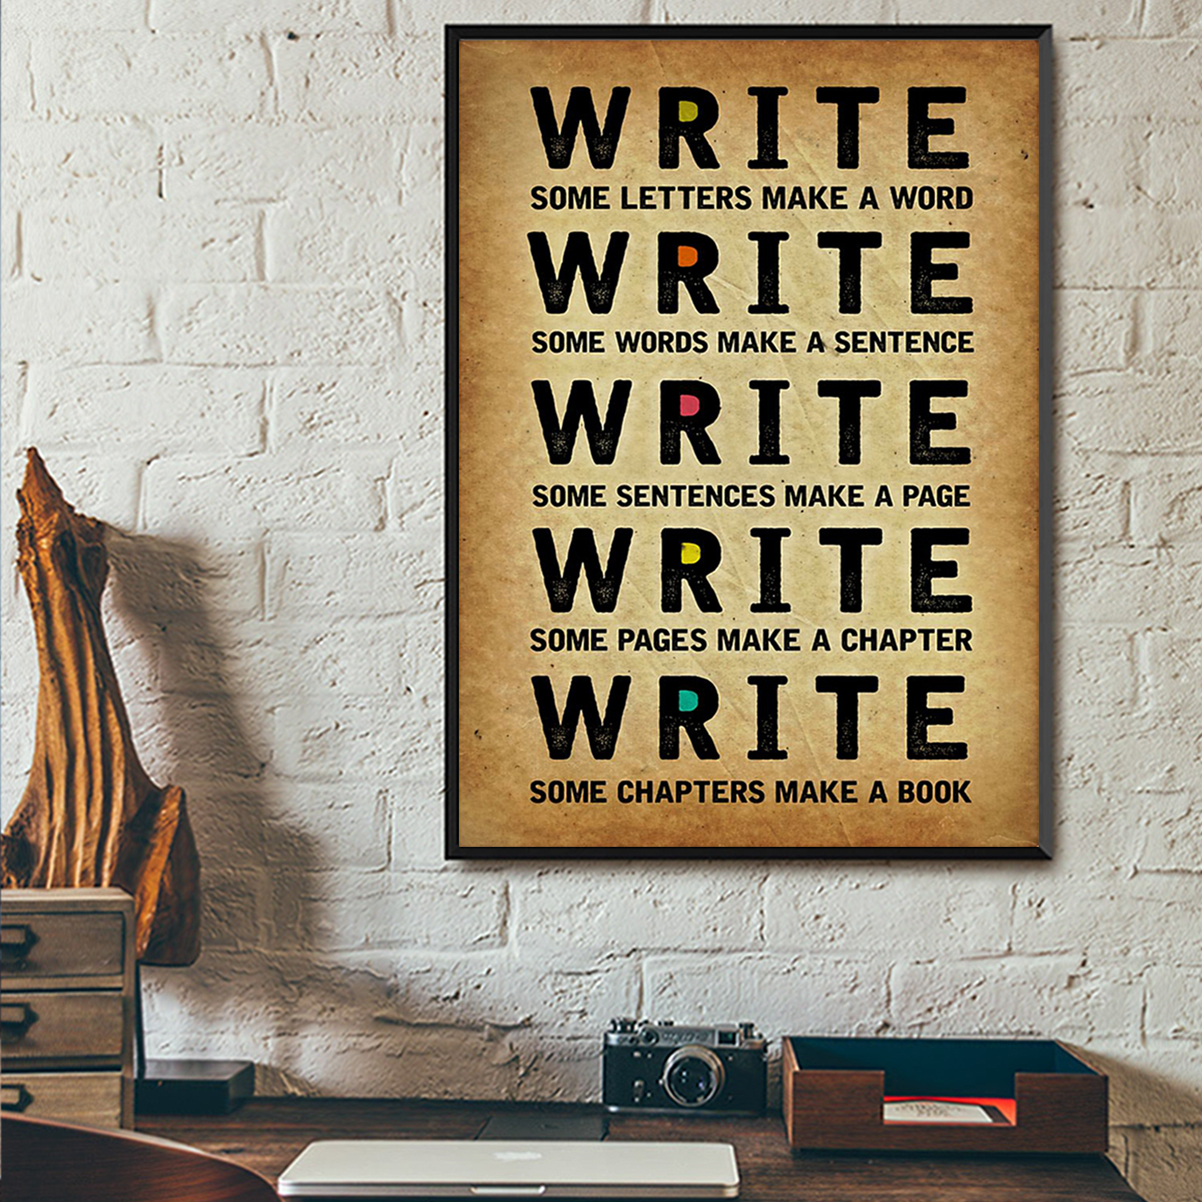 Write some letters make a word poster A2